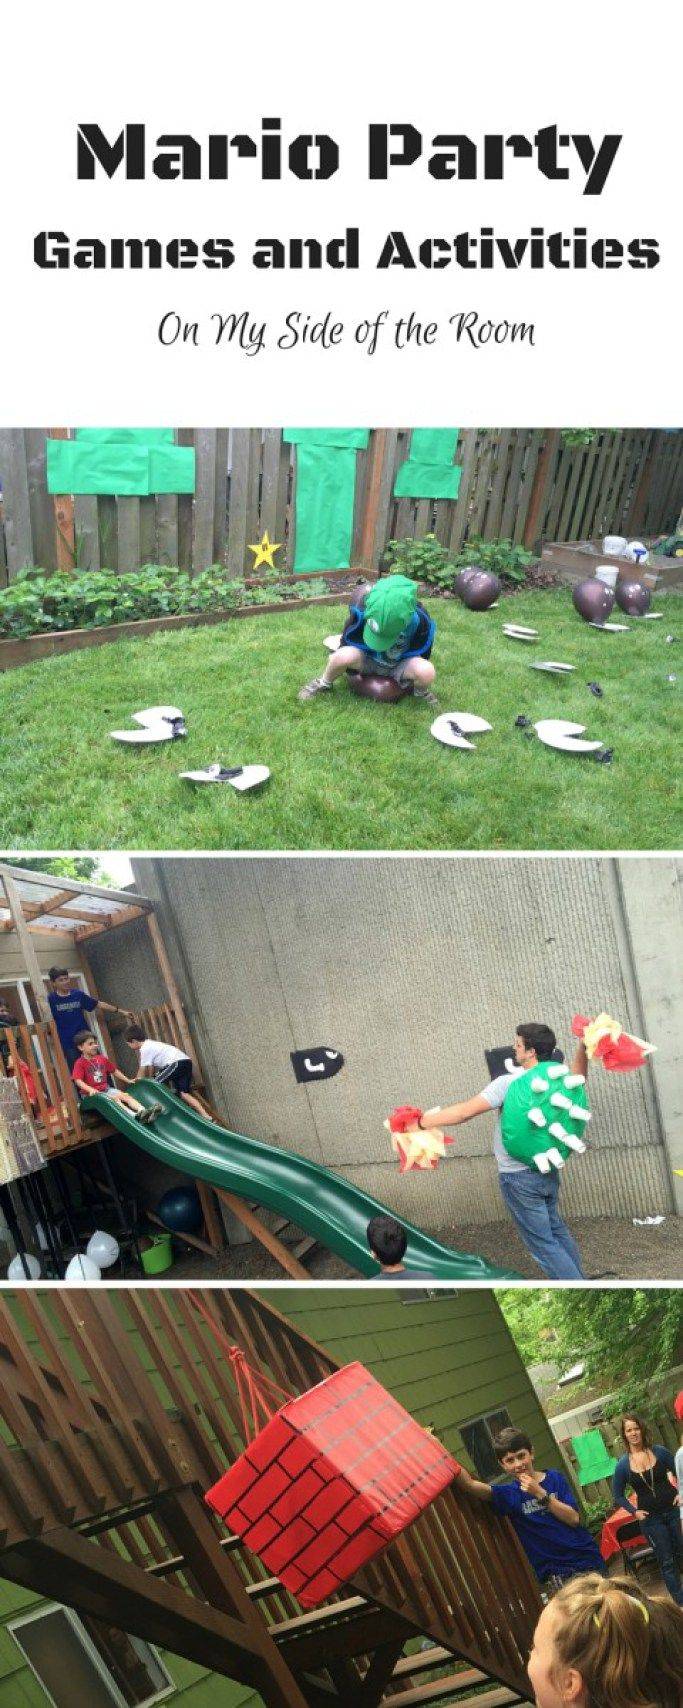 Mario Birthday Party Games and Activities. Scavenger hunt through warp tubes, piranha plants, stomp the goomba, collect coins, through the sea, past the ghost and on to Bowers castle!